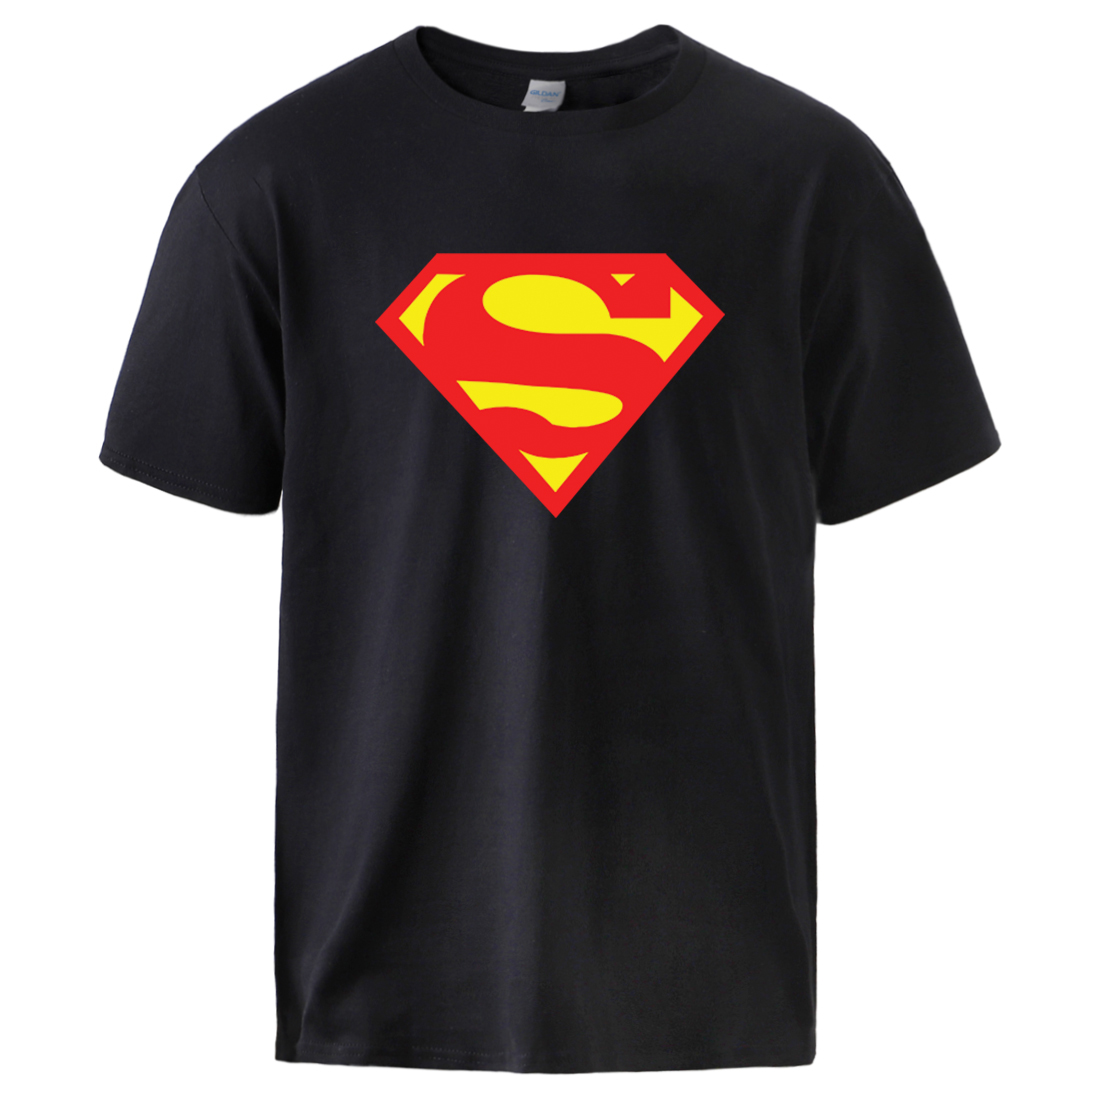 Superman Clark Kent T Shirts Mens Casual Cotton Sportswear Summer Short Sleeve Tops Man New Brand Fashion Streetwear T Shirts